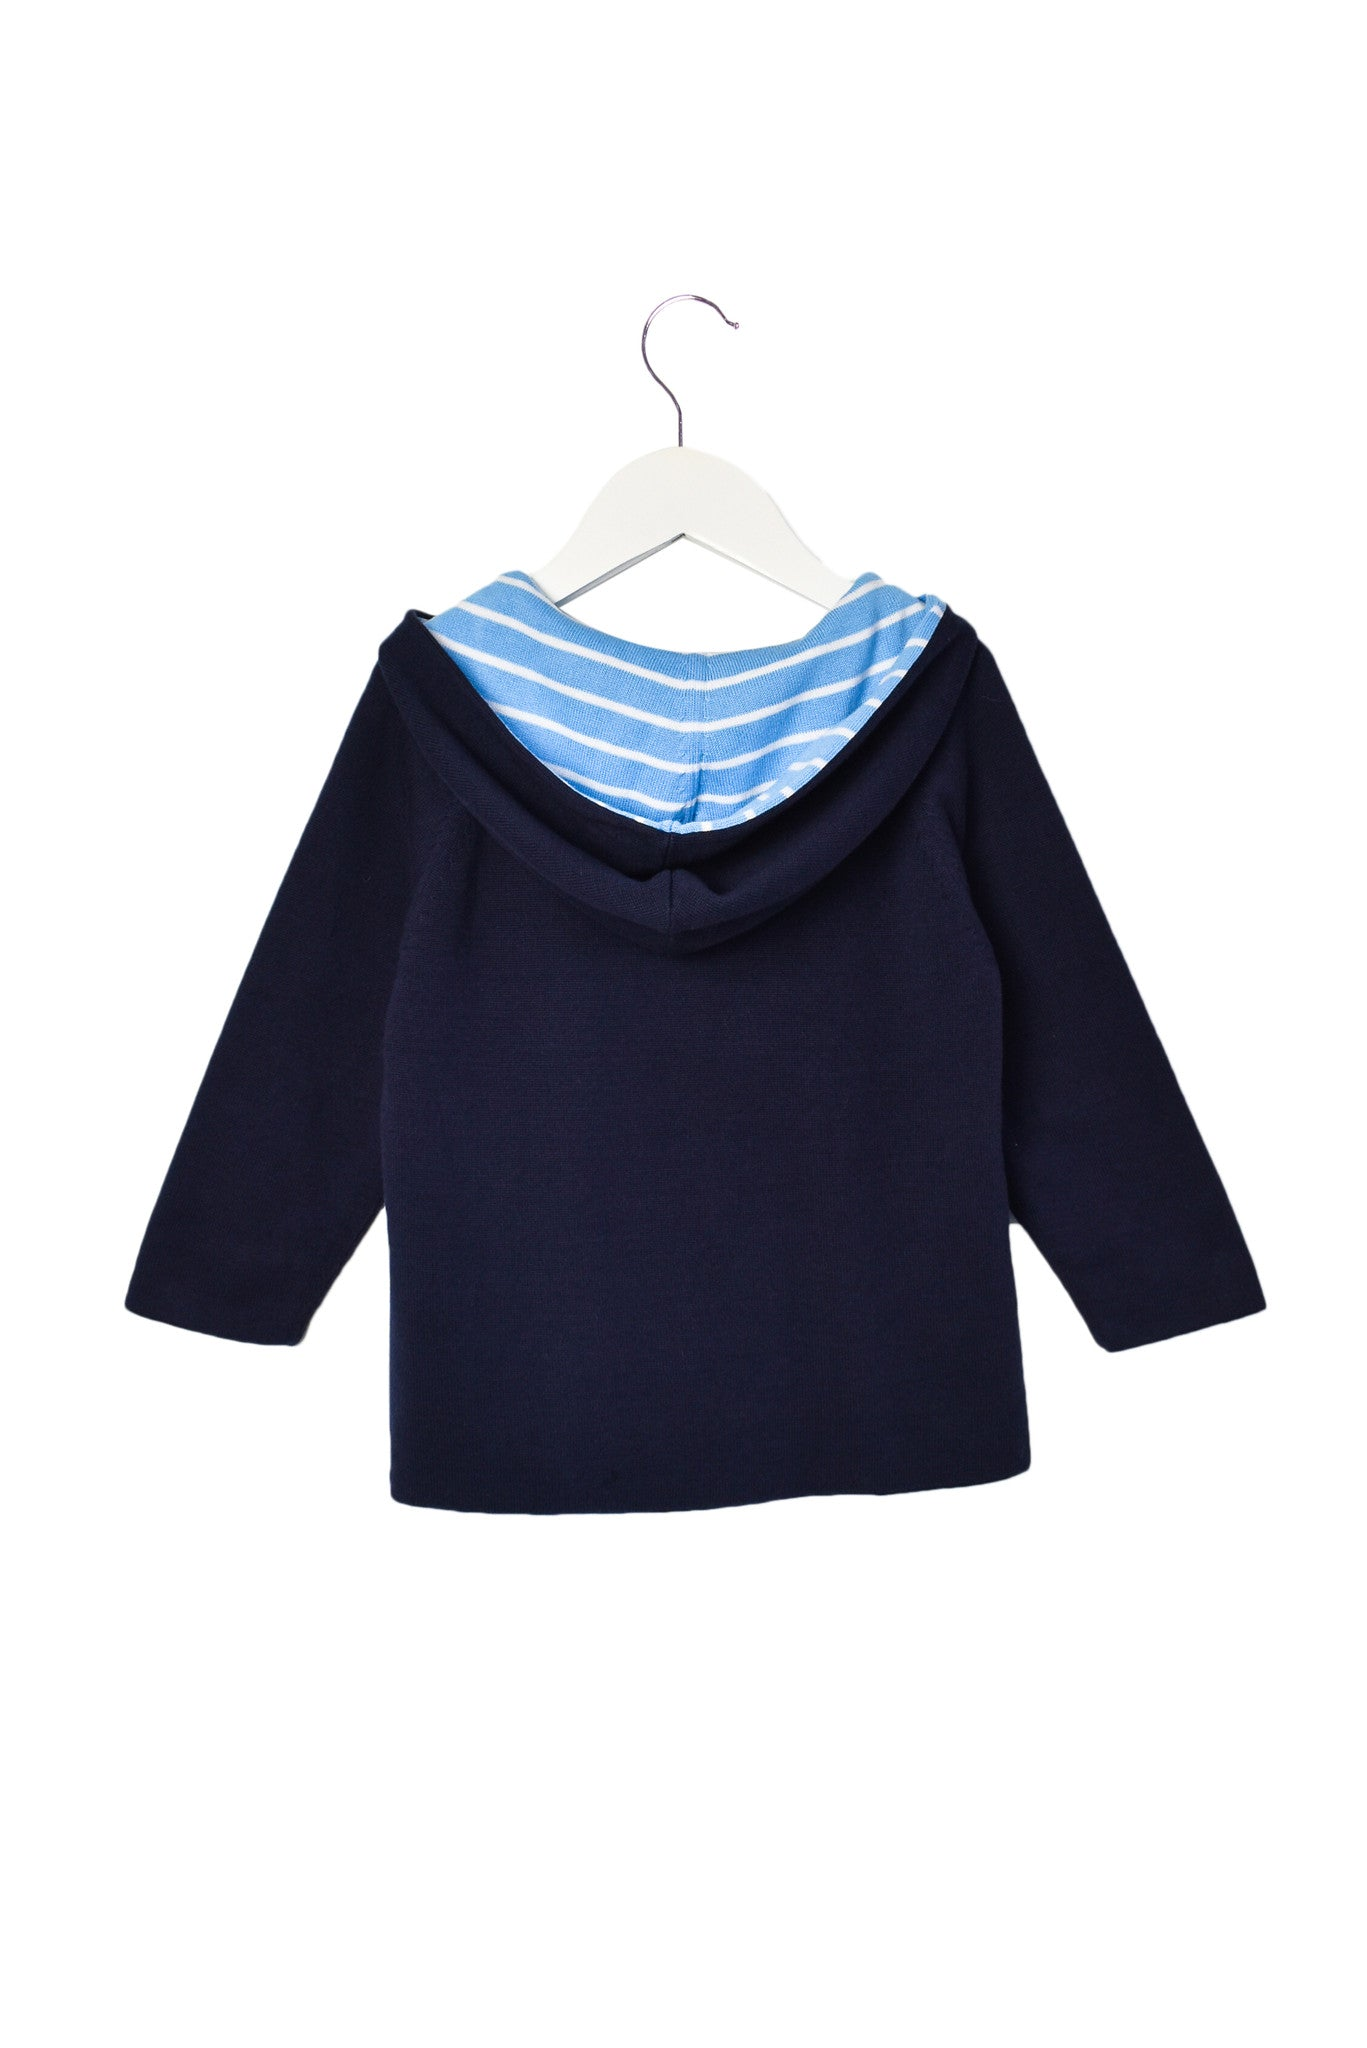 10003601 Hanna Andersson Baby~Sweater 12-18M (80 cm) at Retykle